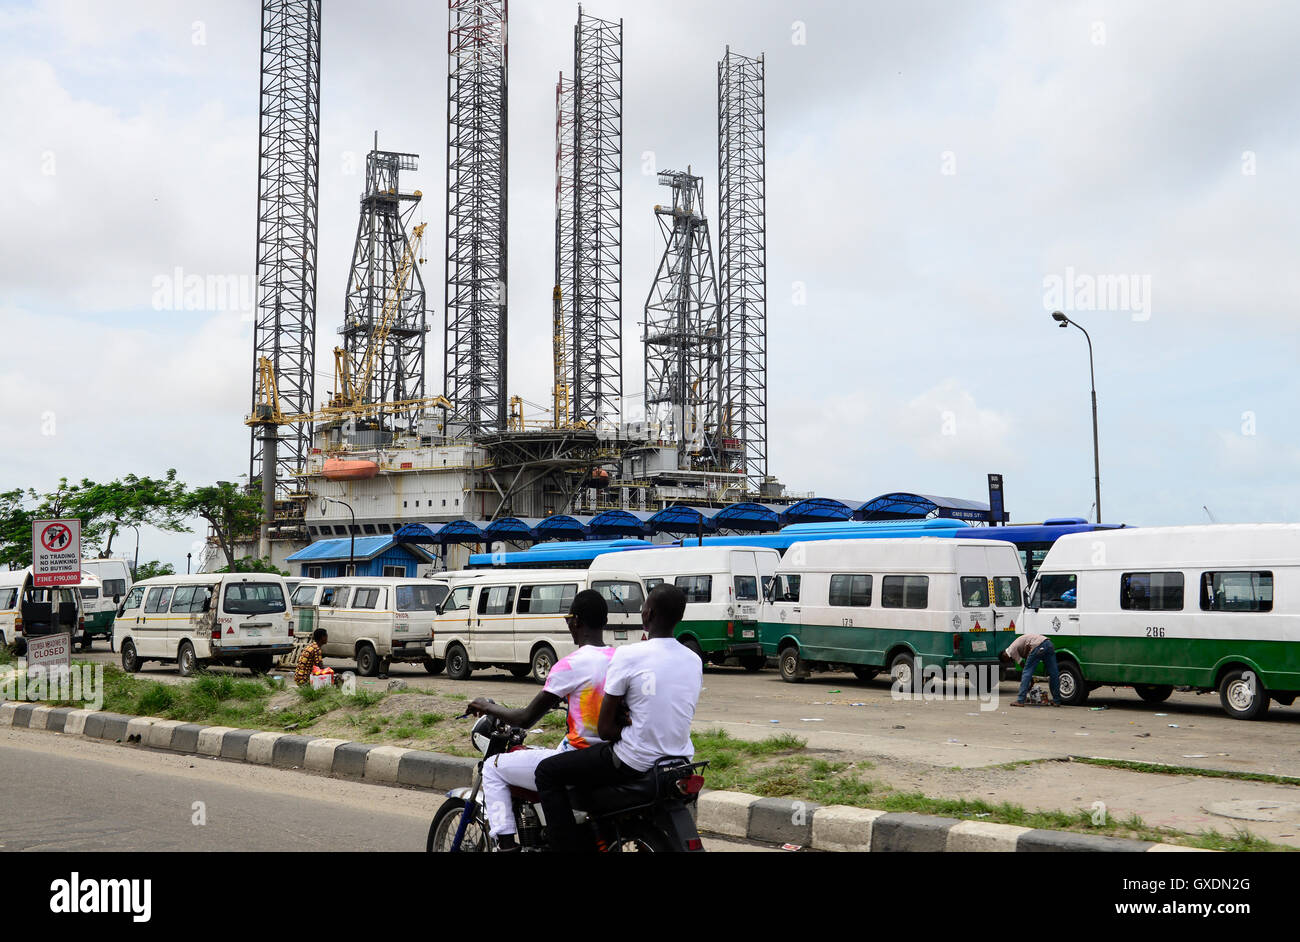 NIGERIA, City Lagos, two oil platform laying in Lagos port, Oritsetimeyin and Onome, traffic and VW Minibus - Stock Image